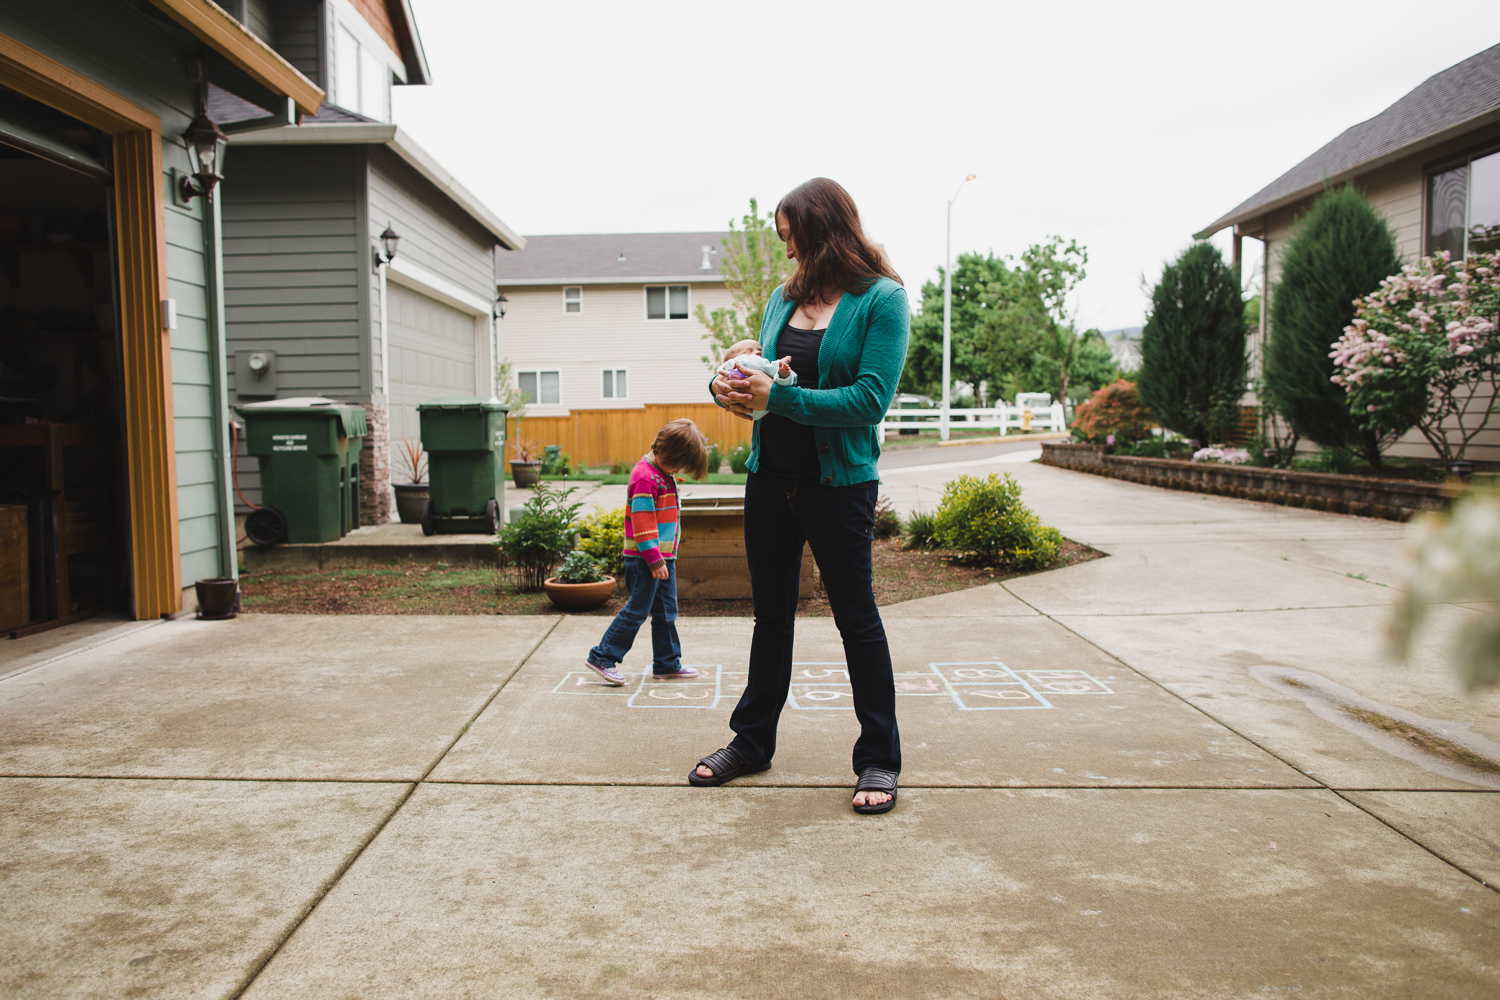 girl playing hopscotch in driveway